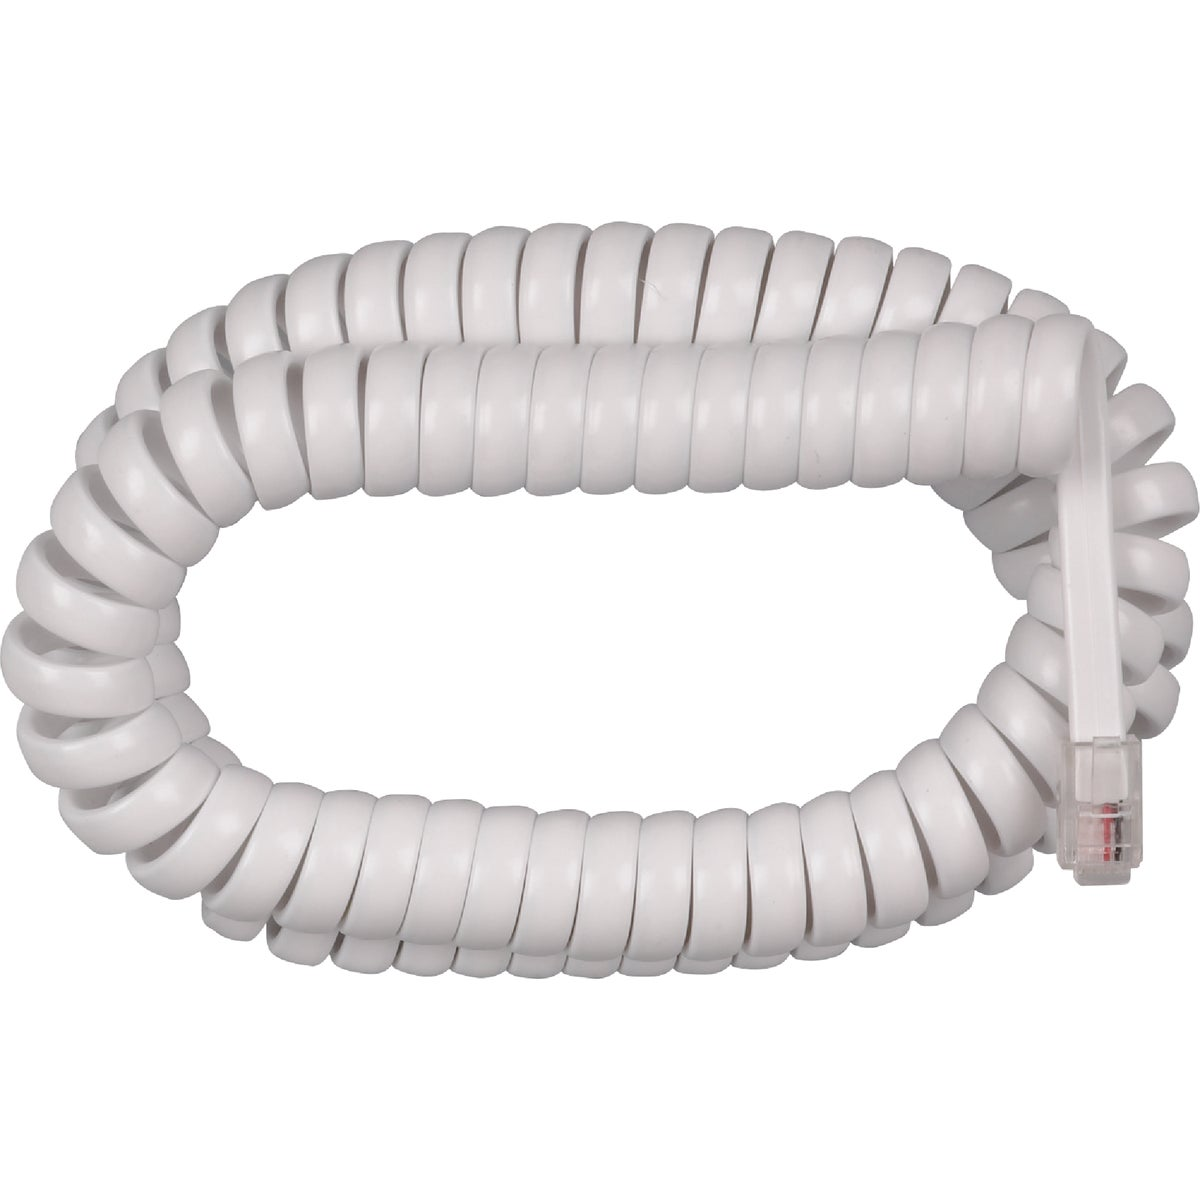 12' WHT PHONE CORD - TP280WR by Audiovox Accessories